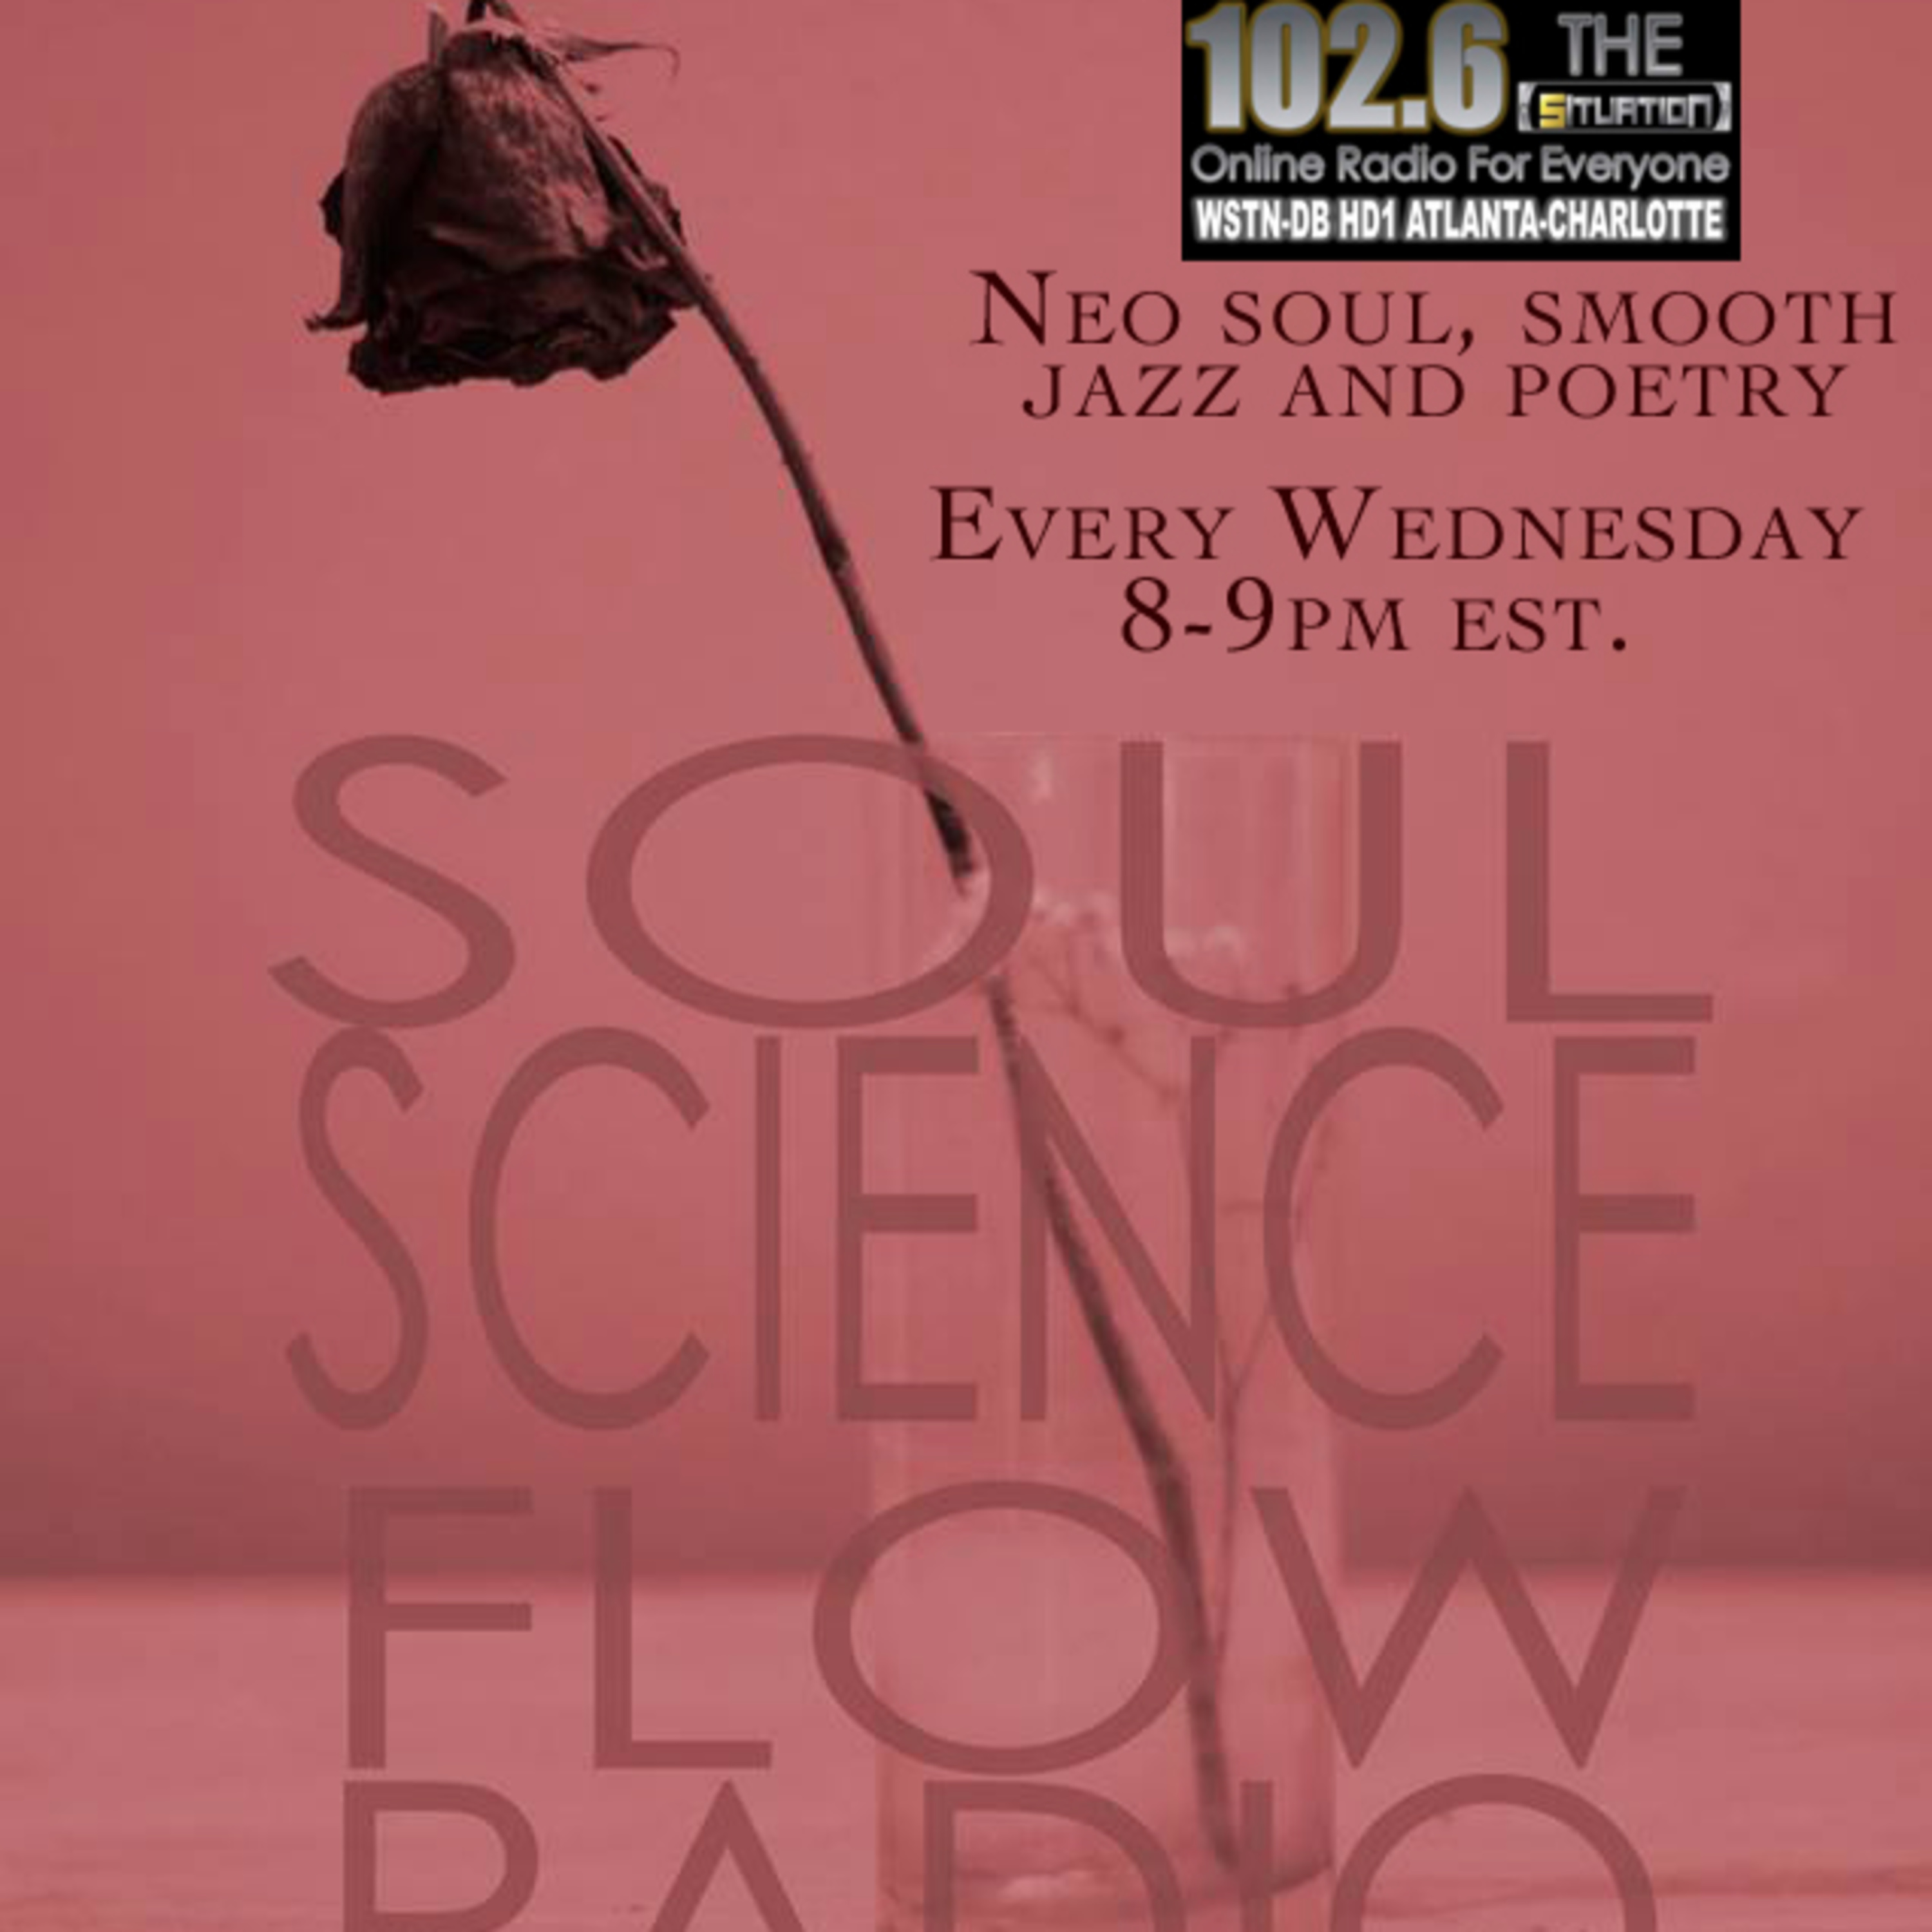 Soul Science Flow (7-17-19)